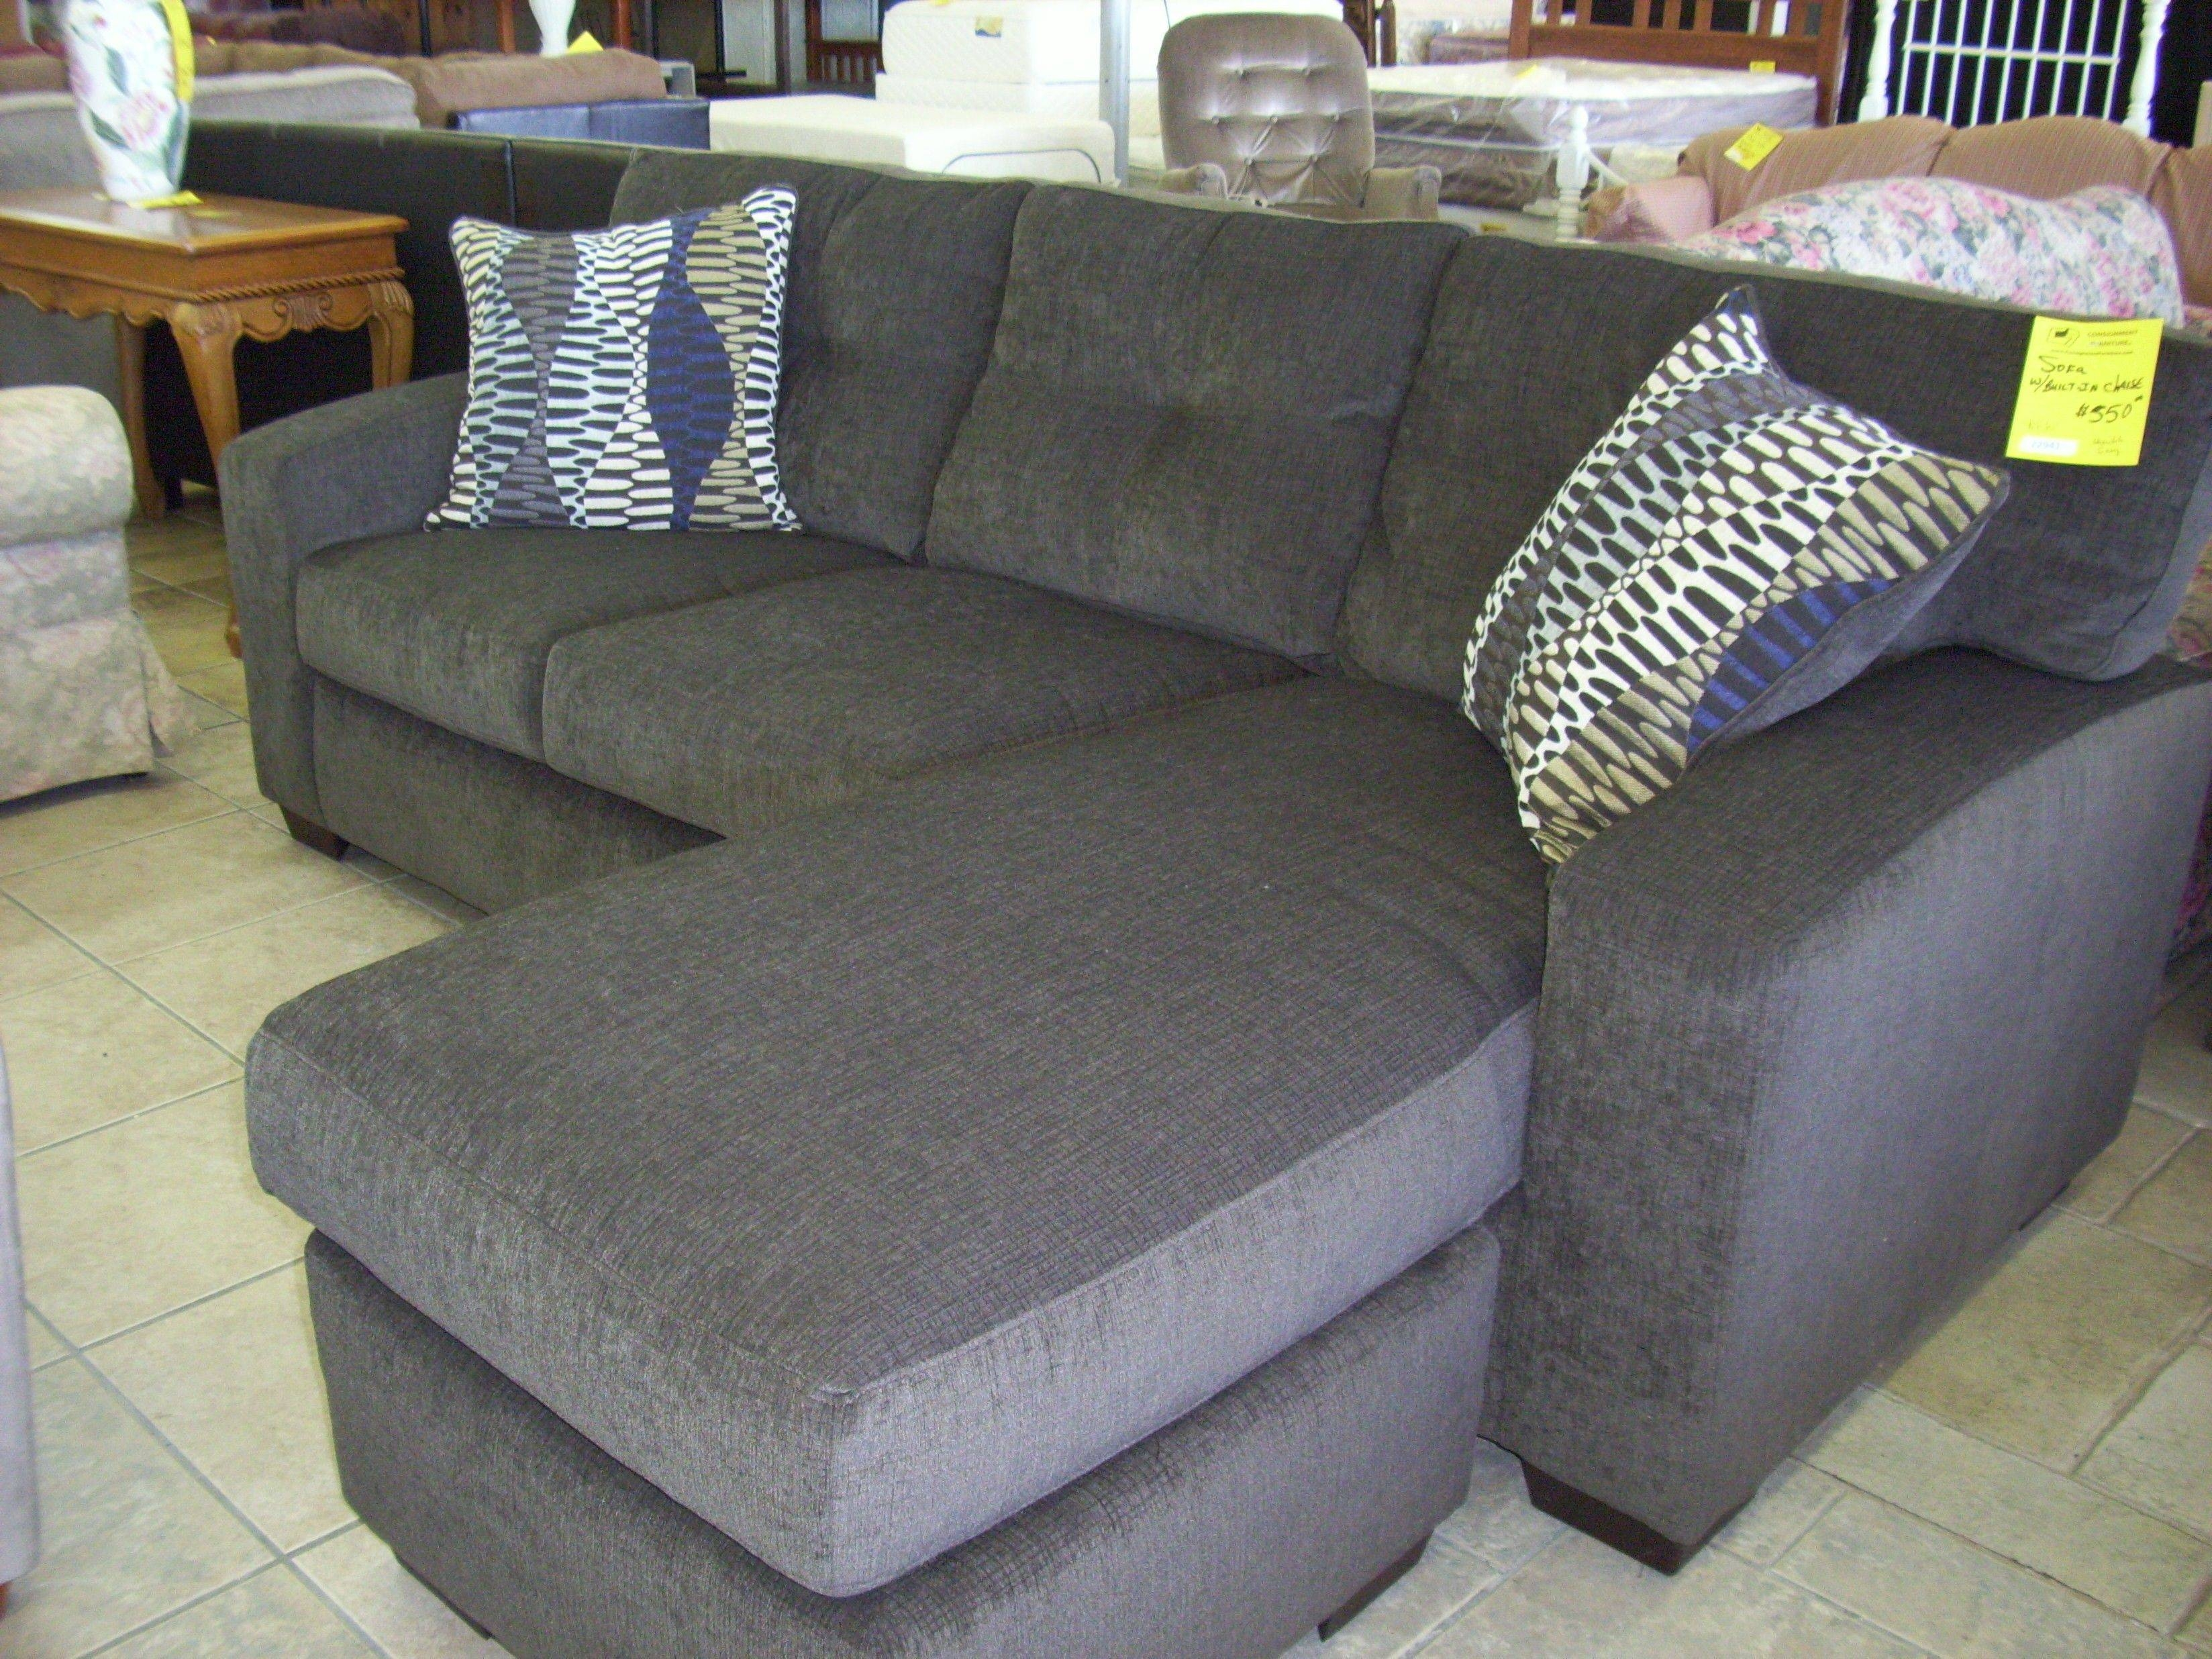 Amazing L Shaped Sectional Sleeper Sofa 29 On Savvy Sleeper Sofas within L Shaped Sectional Sleeper Sofa (Image 2 of 25)